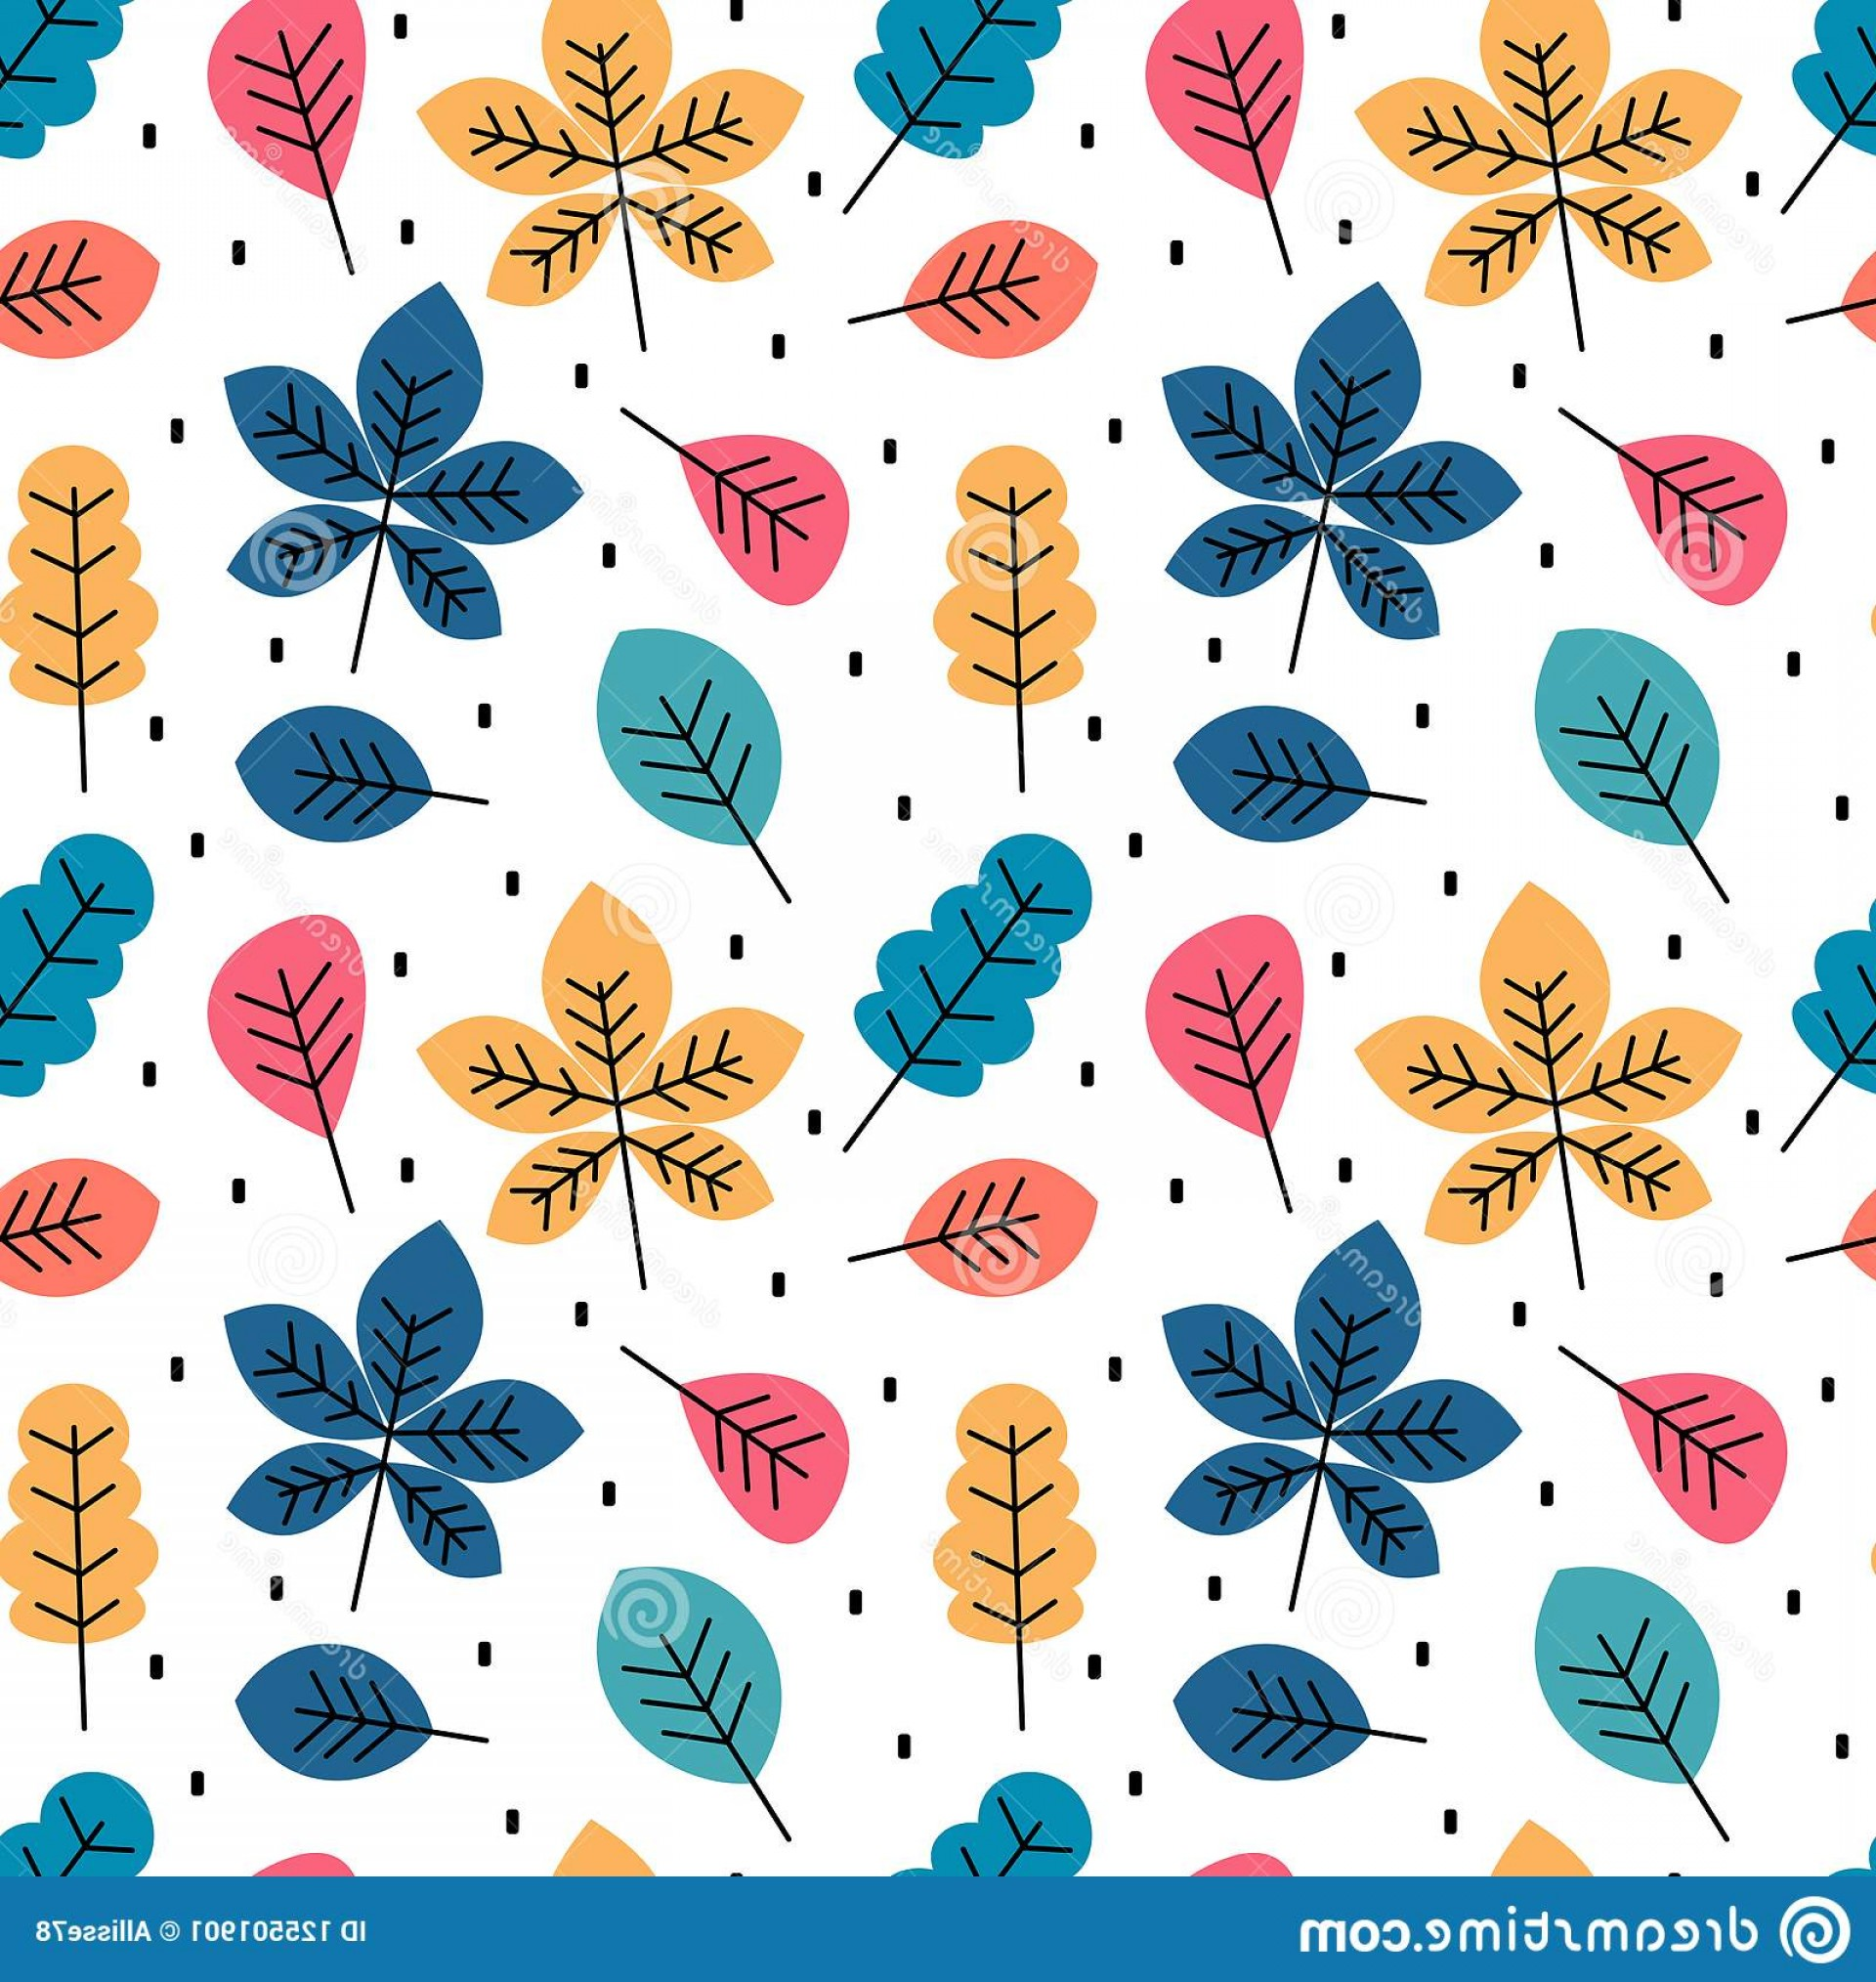 Autumn Seamless Vector: Cute Colorful Autumn Fall Seamless Vector Pattern Background Illustration Leaves Cute Colorful Autumn Fall Seamless Pattern Image